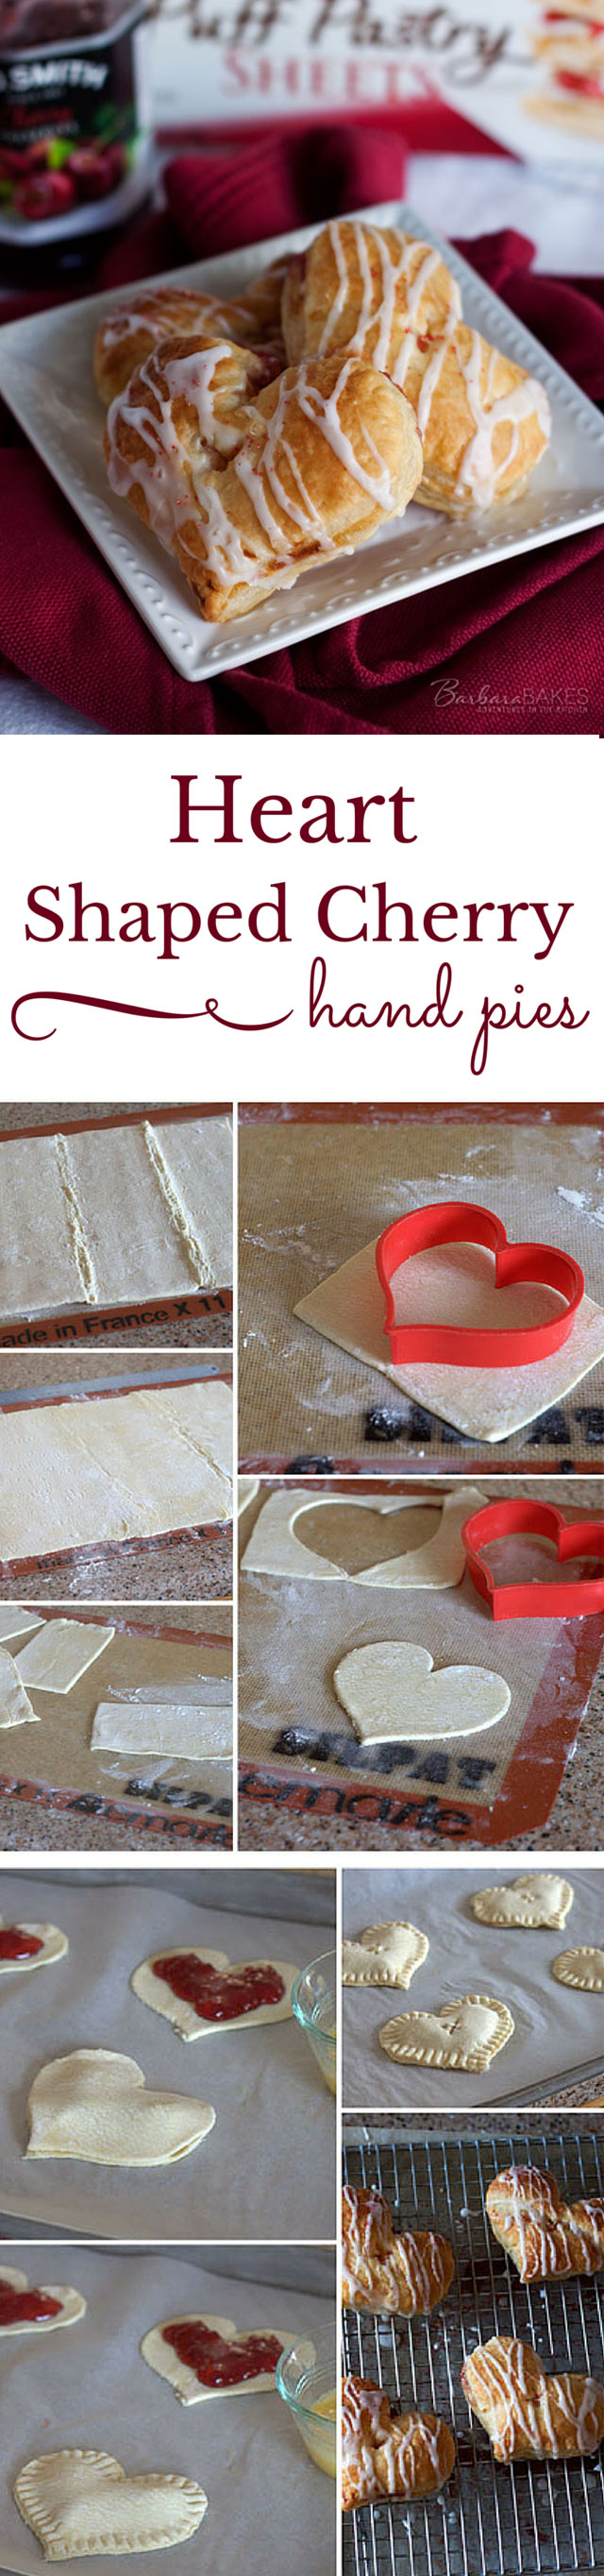 Heart-Shaped-Cherry-Hand-Pies-Collage-4-Barbara-Bakes